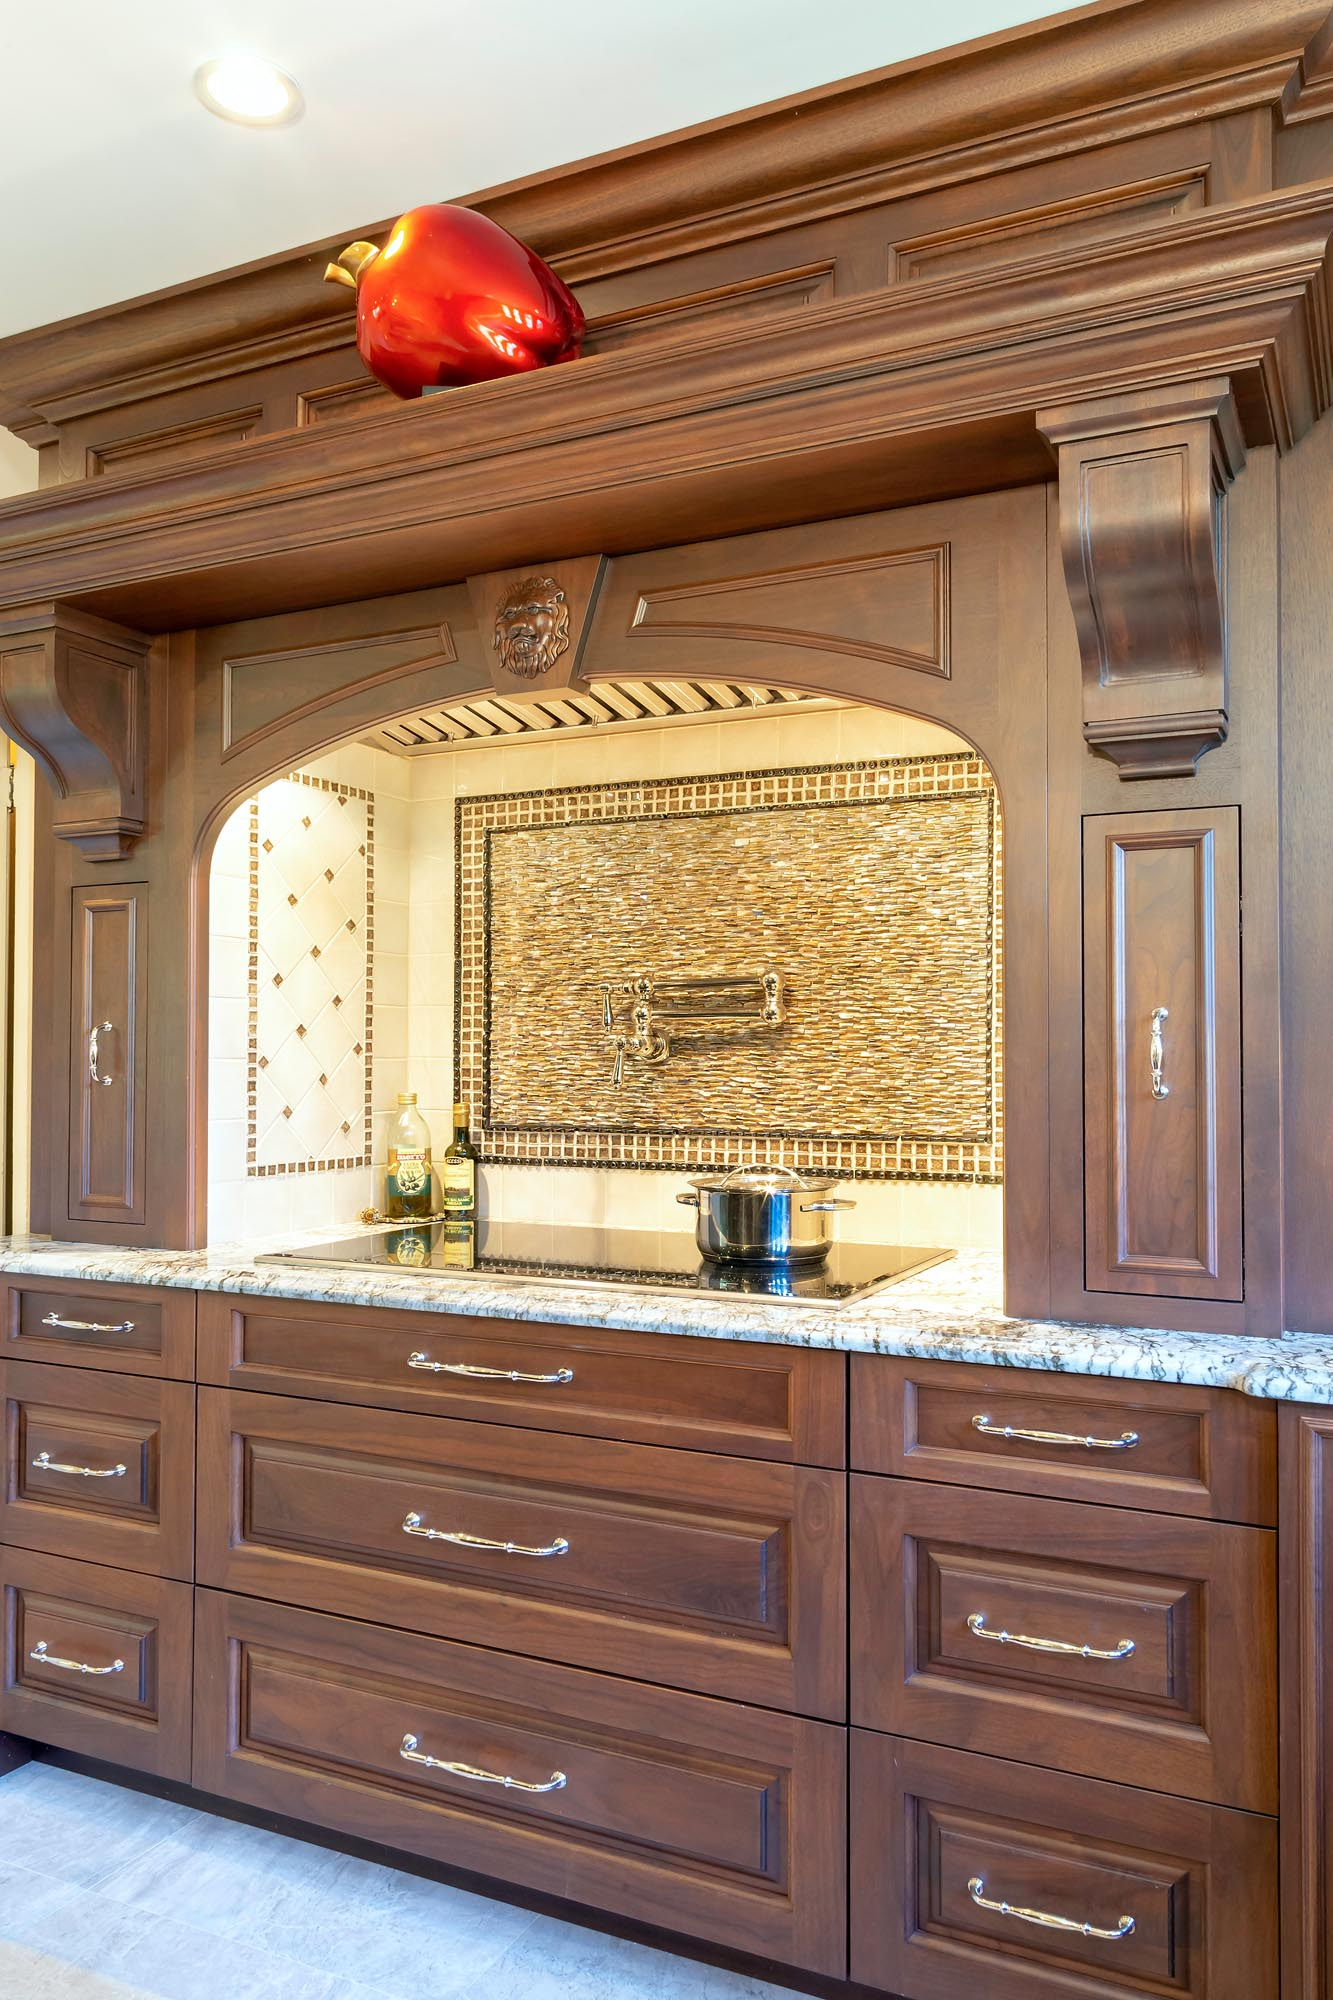 Custom alcove range hood with mantle and corbels